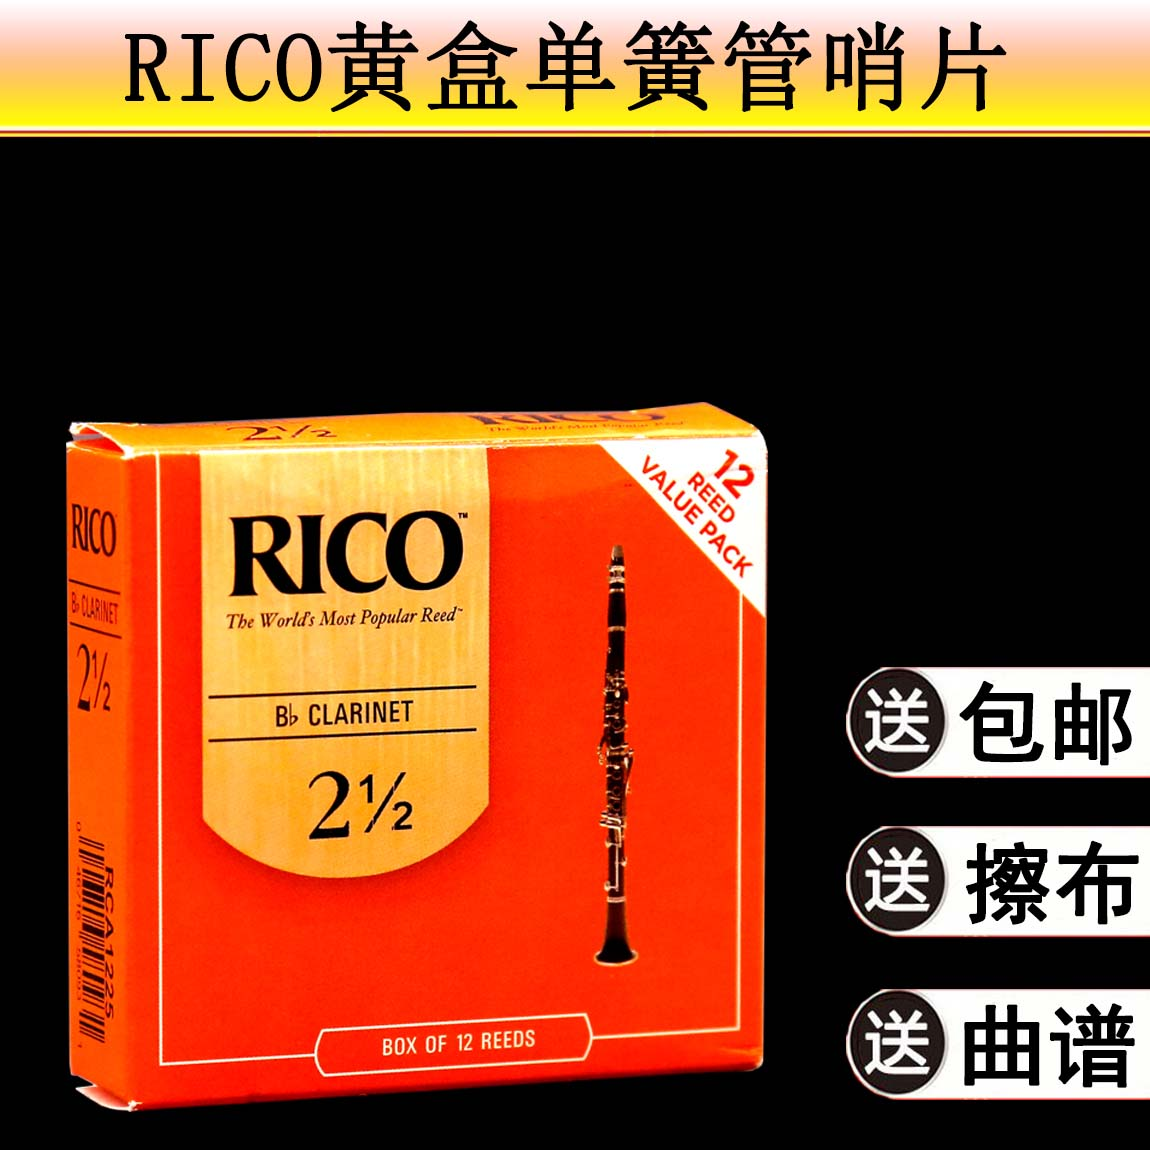 Us rico yellow box orange box b flat clarinet clarinet reeds swiss mouth rui buckle 12 tablets